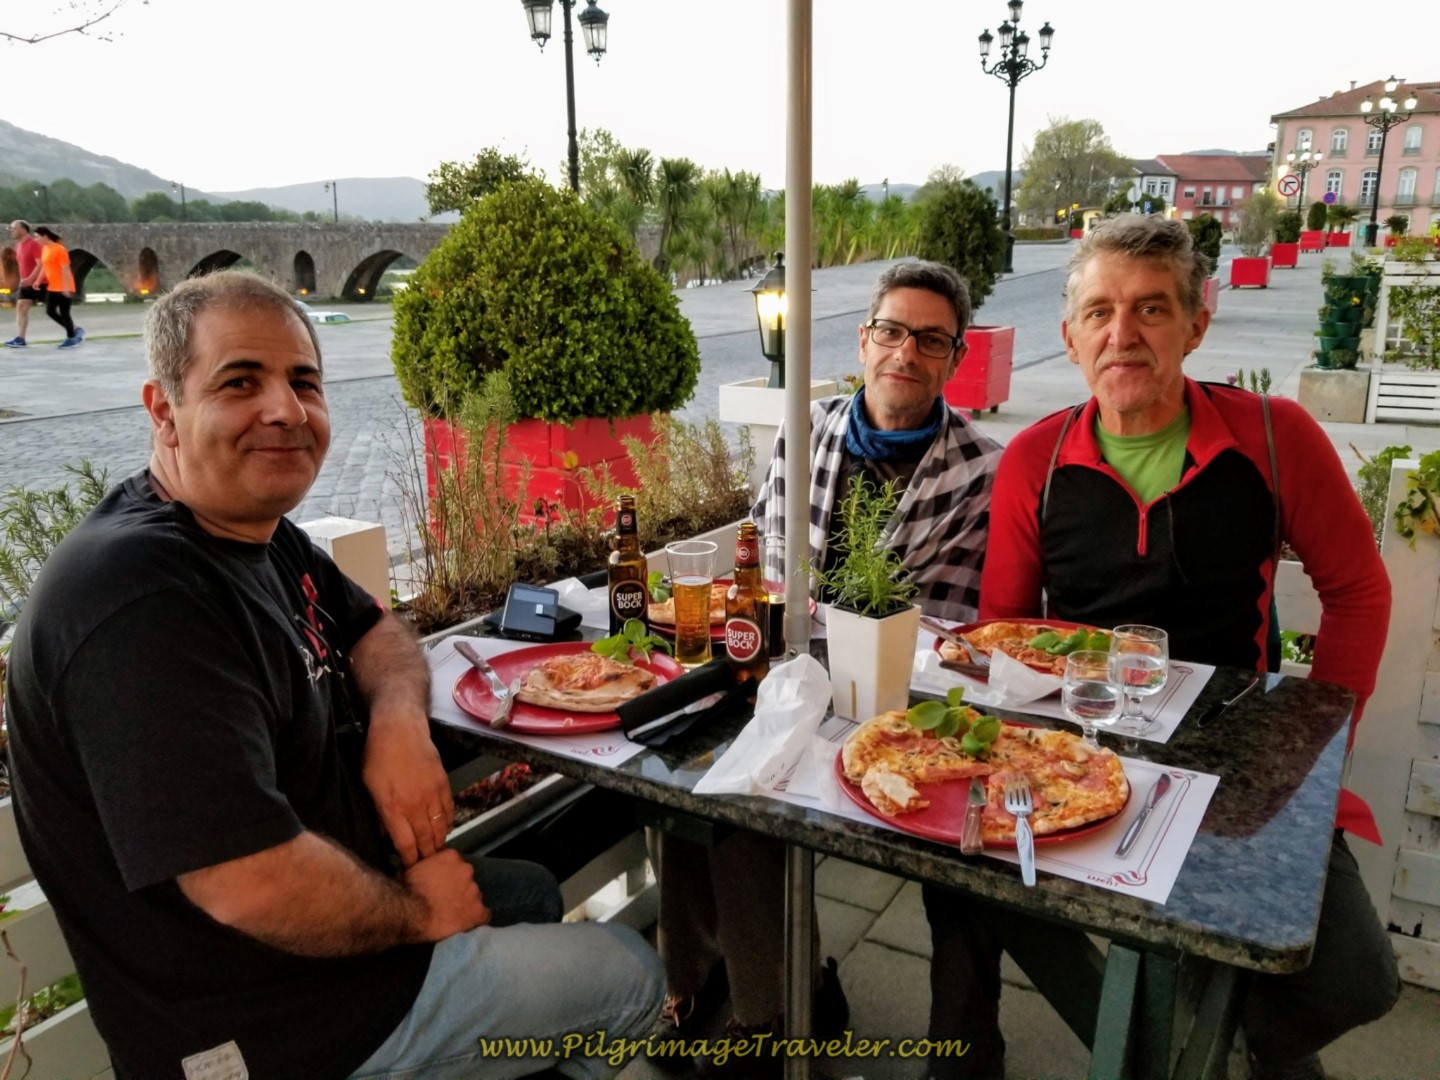 Pedro, Jorge and Rich at the Pizzeria by the medieval bridge in Ponte de Lima